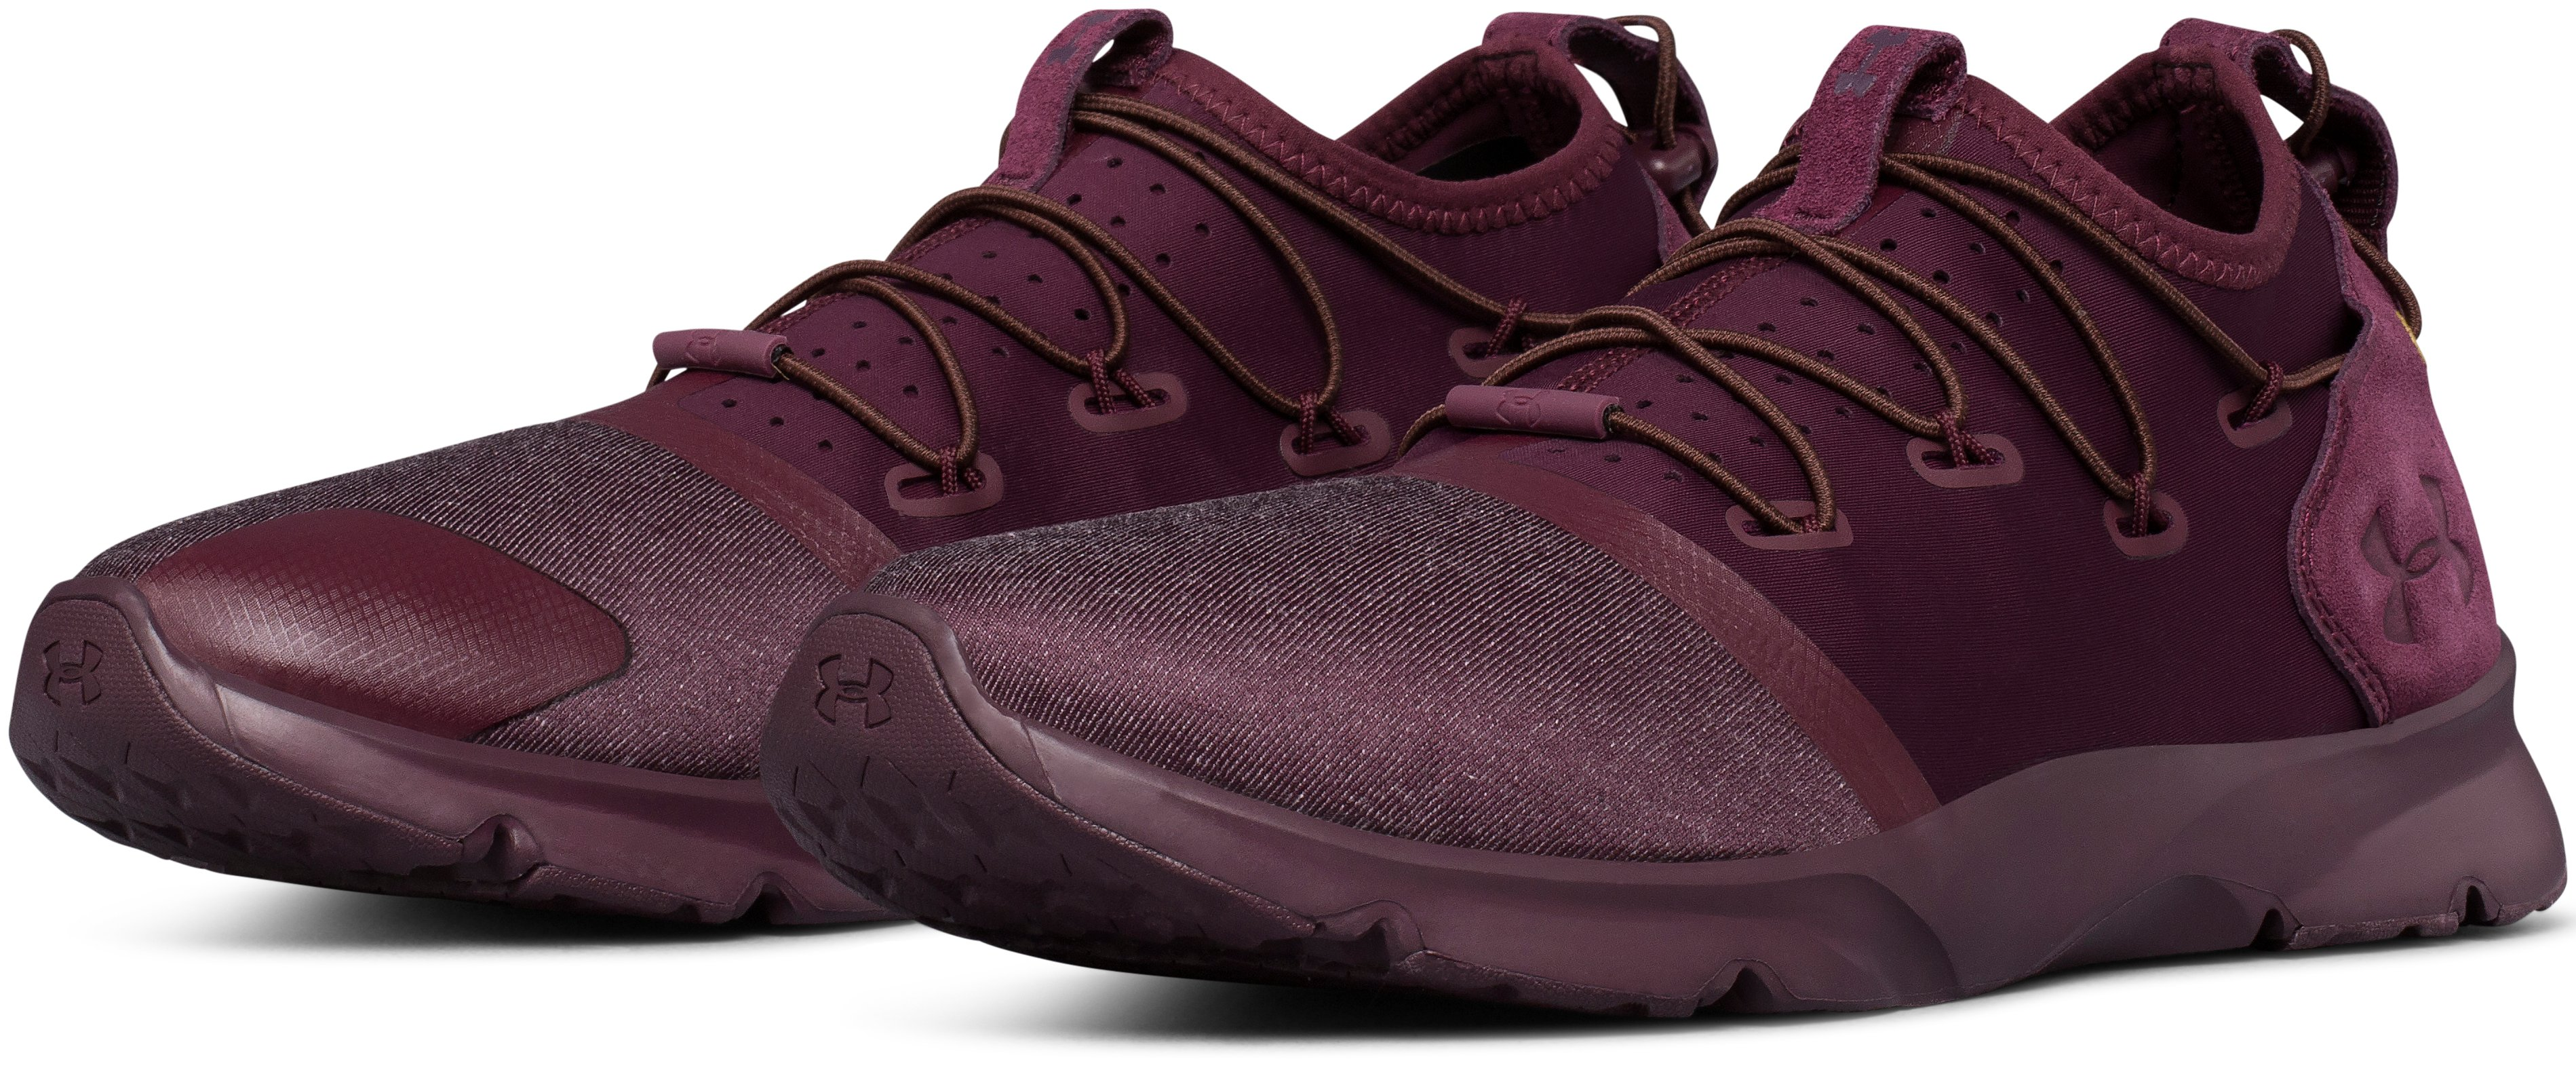 Men's UA Drift 2 Menswear Lifestyle Shoes, RAISIN RED, undefined